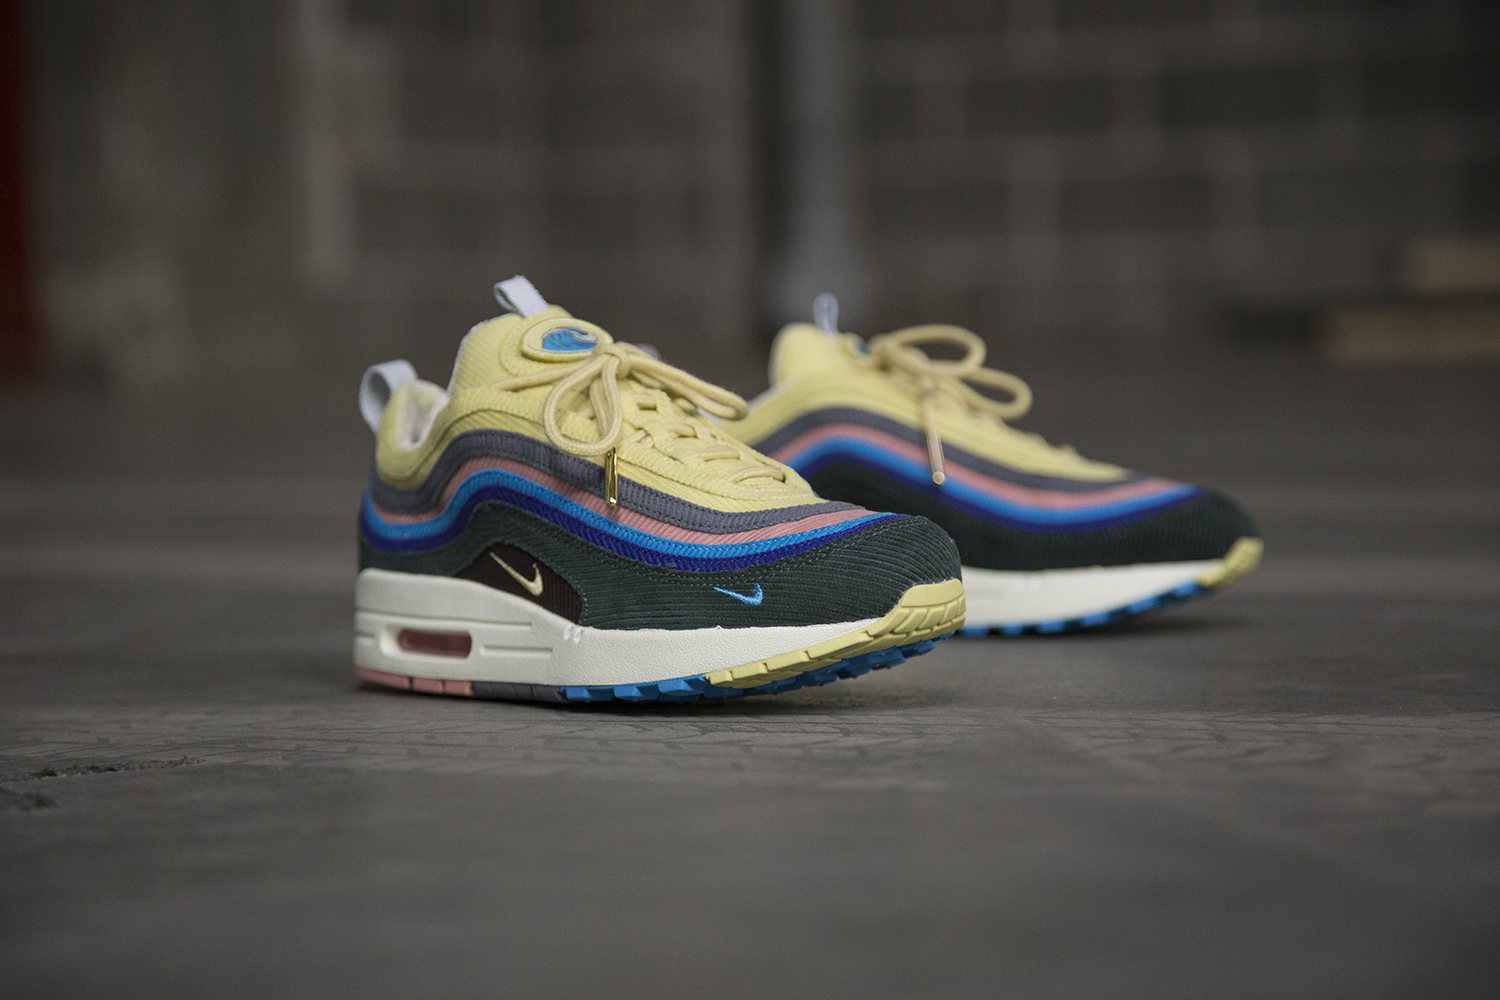 Unquestionably one of the most anticipated releases ahead of Air Max Day this year is Sean Wotherspoon's winning entry to 2017's 'Vote Forward' competition, ...